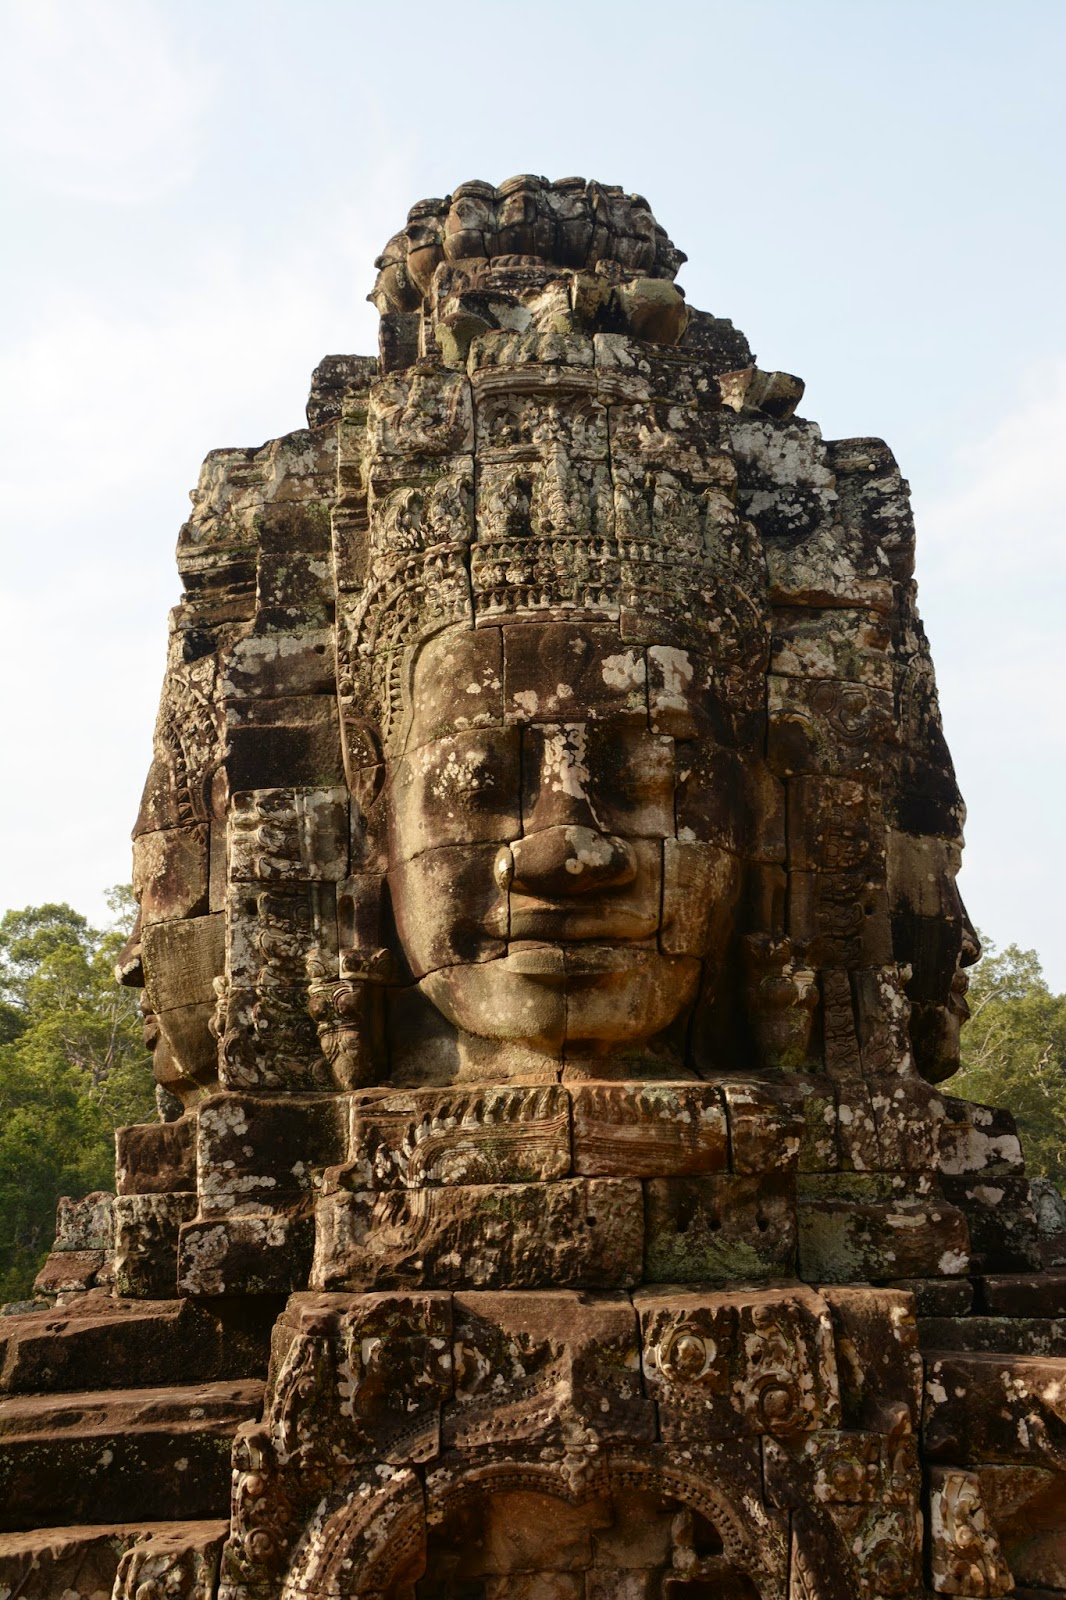 angkor wat cambodia top tips travel holiday vacation buddha head statute